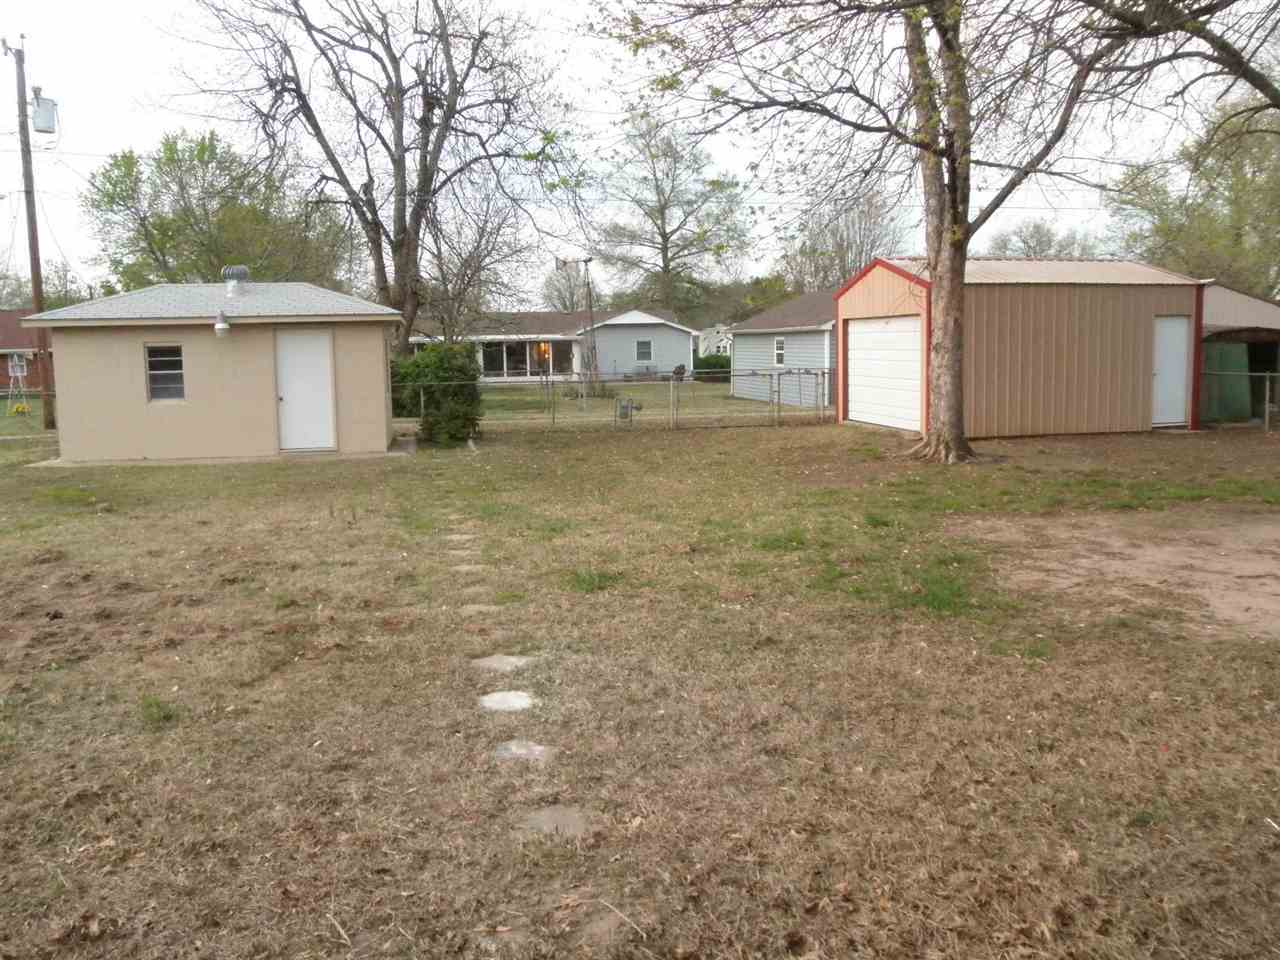 Sold Cross Sale W/ MLS | 1505 Donald  Ponca City, OK 74604 17